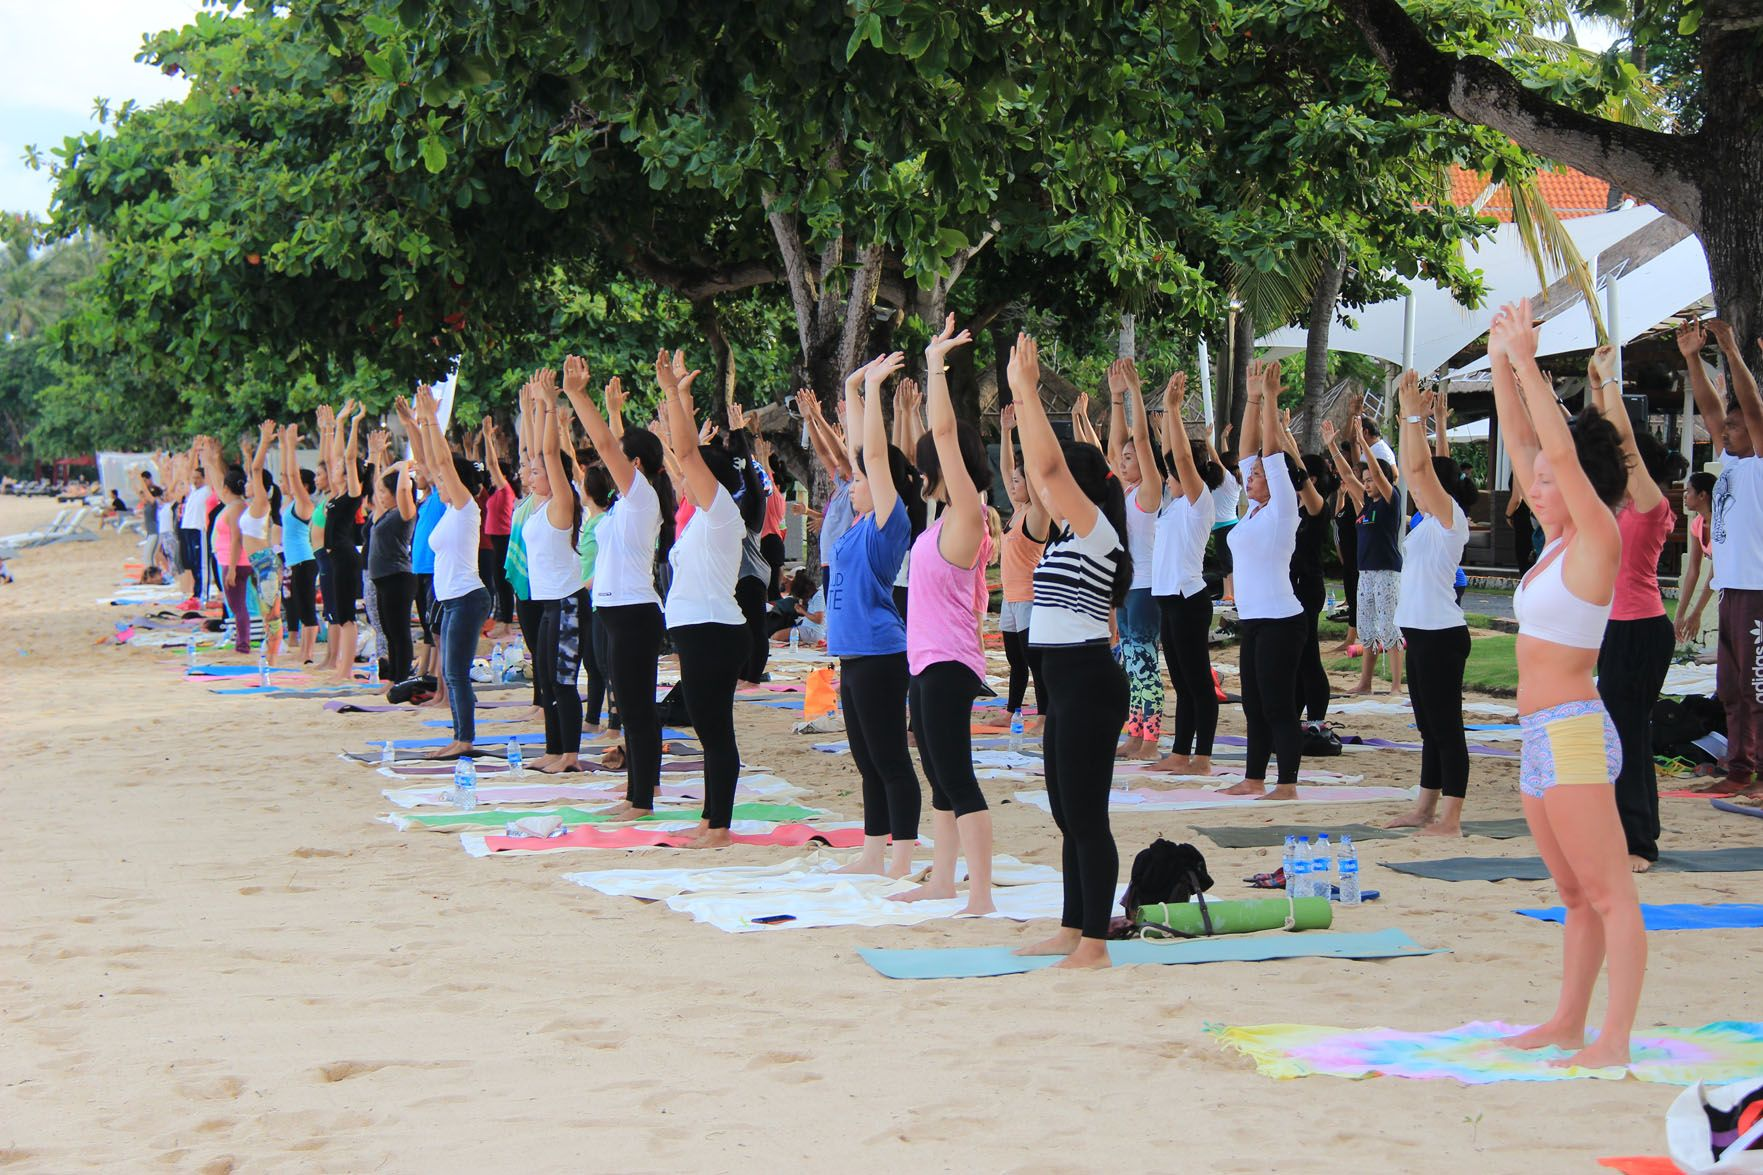 UNICEF Beach Family Yoga at Westin Bali